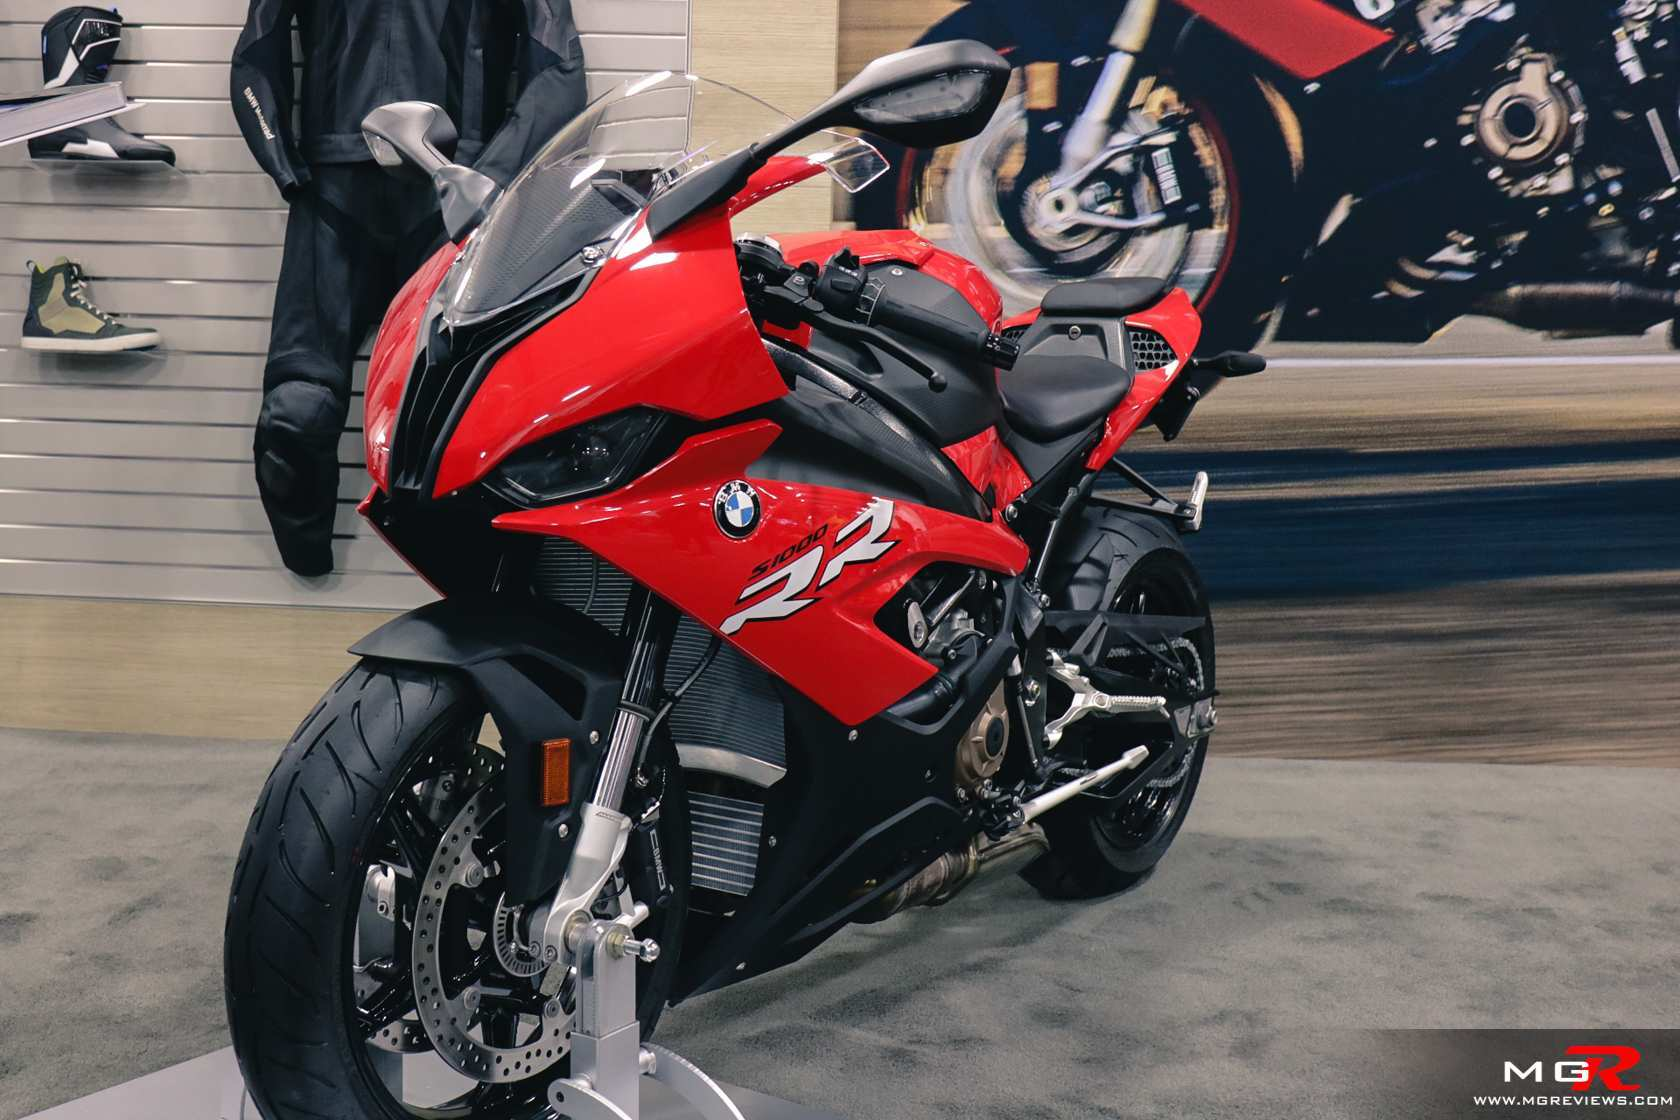 65 Concept Of Bmw S1000rr 2020 Pricing With Bmw S1000rr 2020 Car Review Car Review